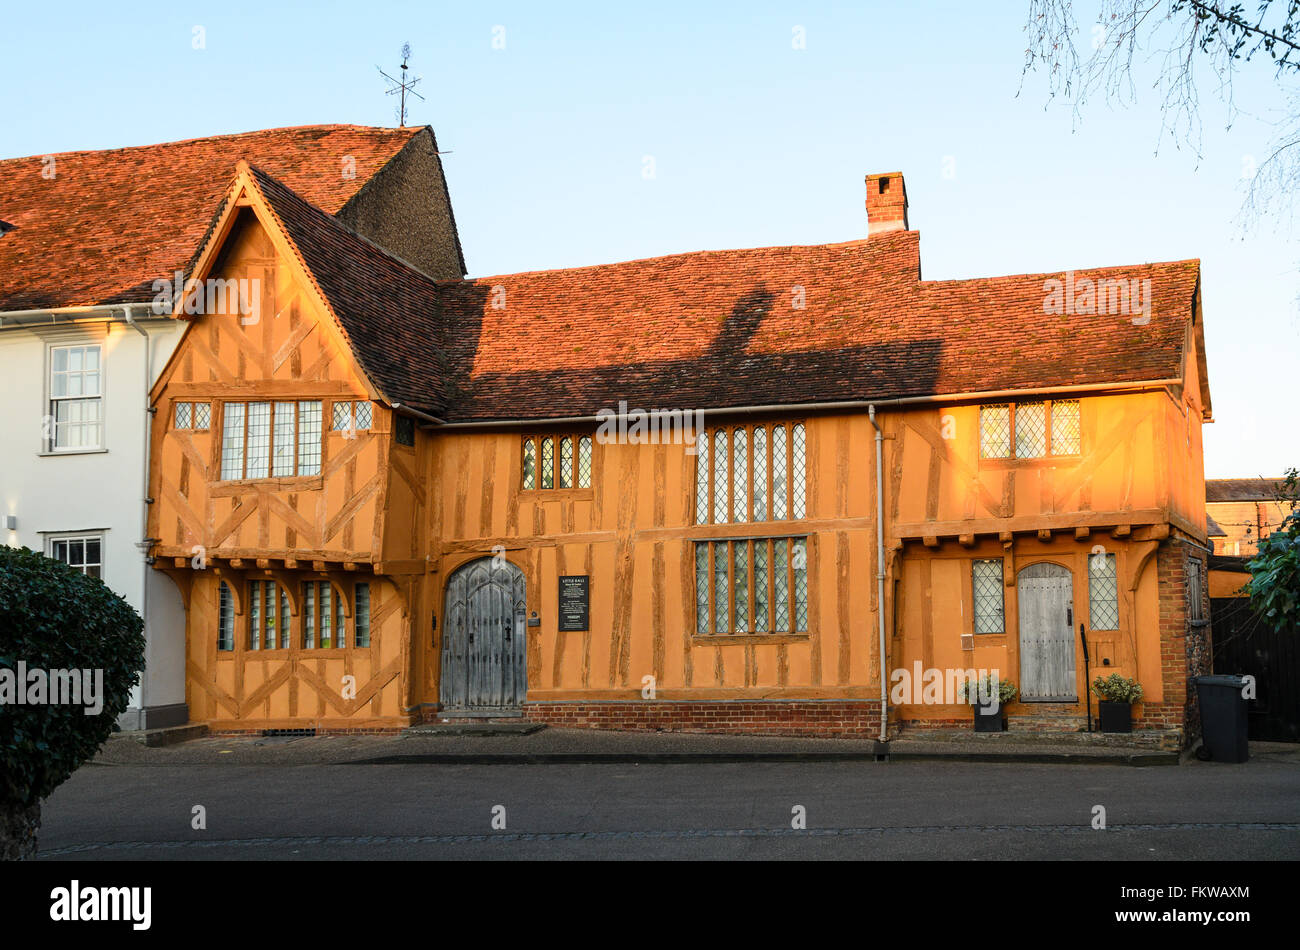 The 14th Century Little Hall at Lavenham, Suffolk, England, United Kingdom.Stock Photo